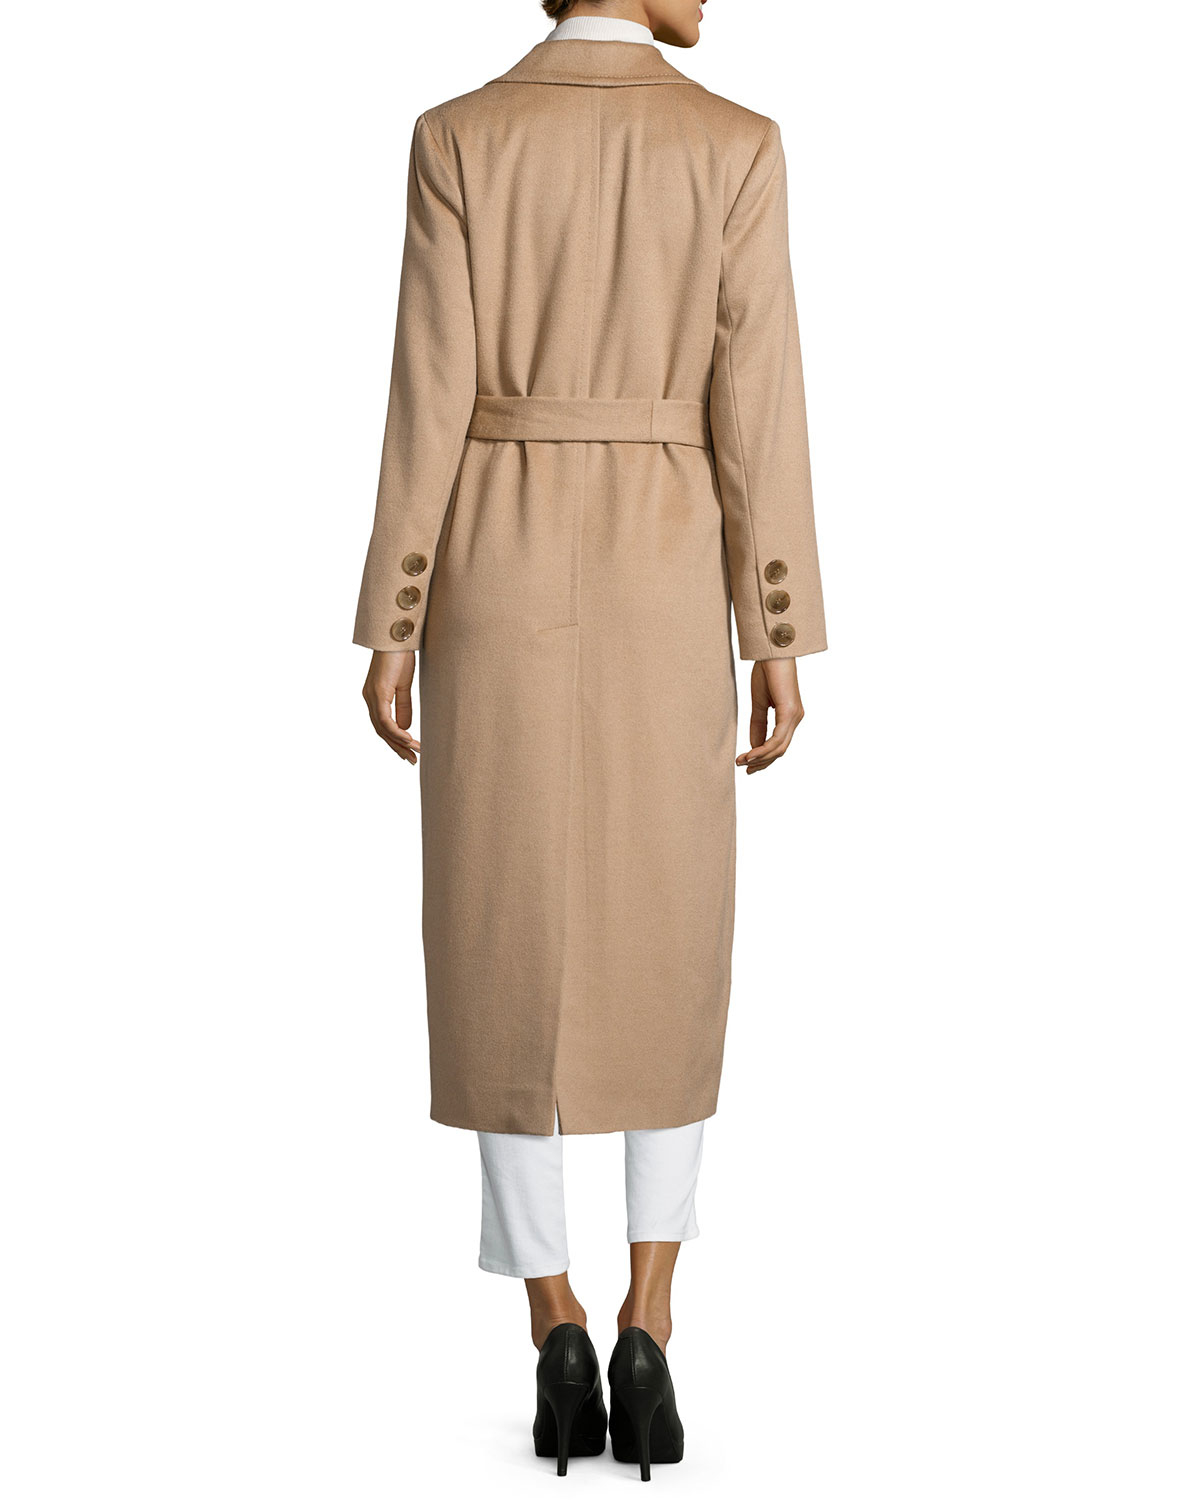 Sofia cashmere Long Wrap Camel-hair Coat in Natural   Lyst